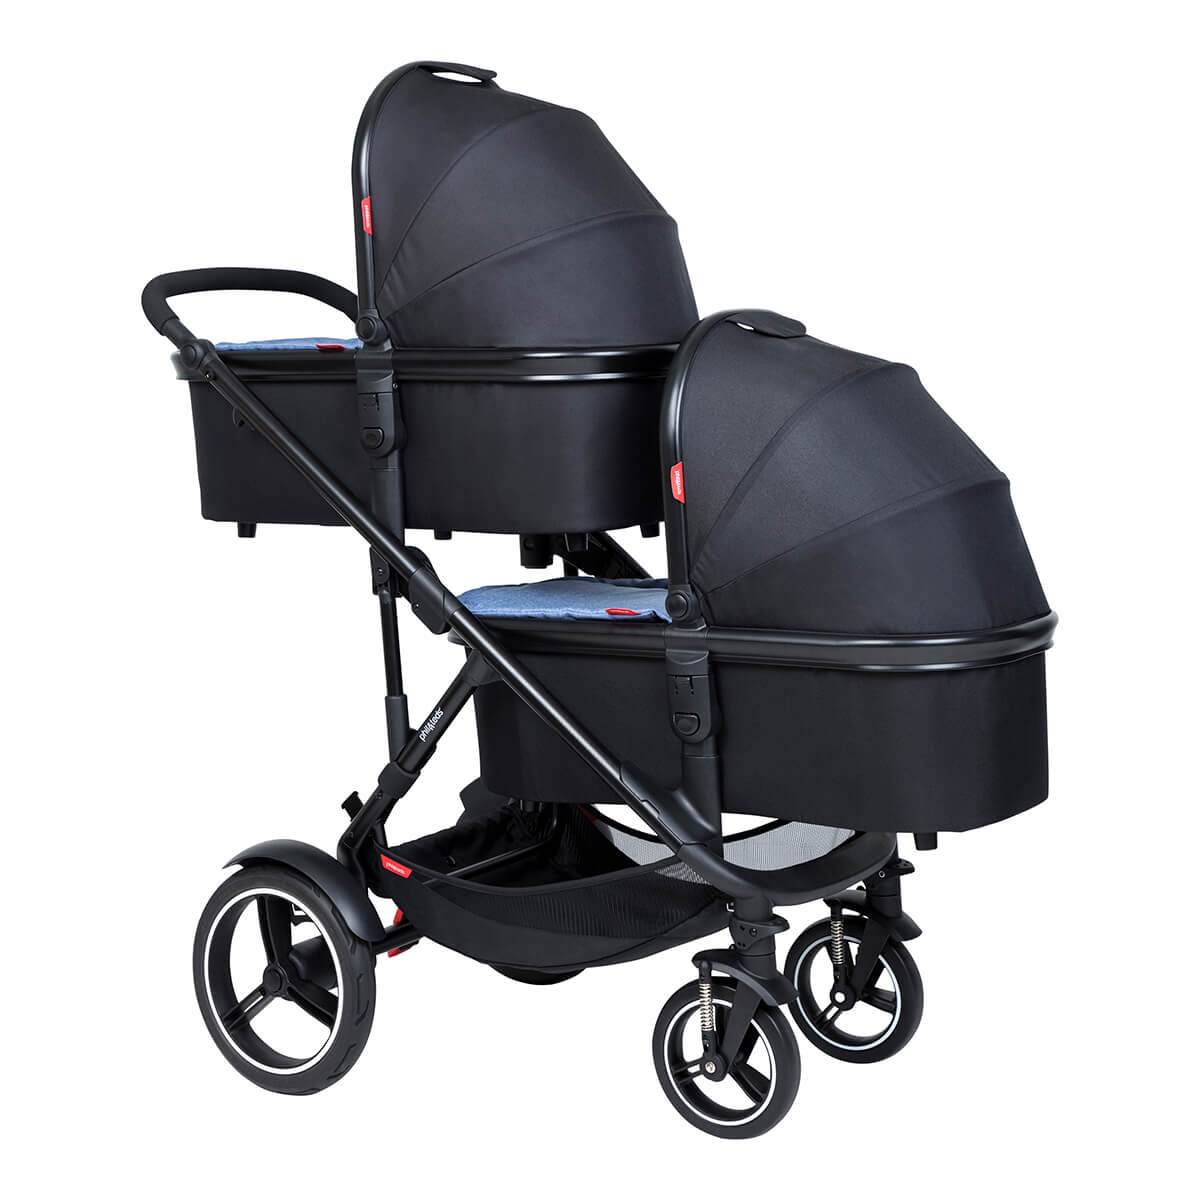 https://cdn.accentuate.io/4394653778008/19272835367000/philteds-voyager-buggy-with-double-travel-systems-and-freerider-stroller-board-in-the-rear-v1626484570974.jpg?1200x1200